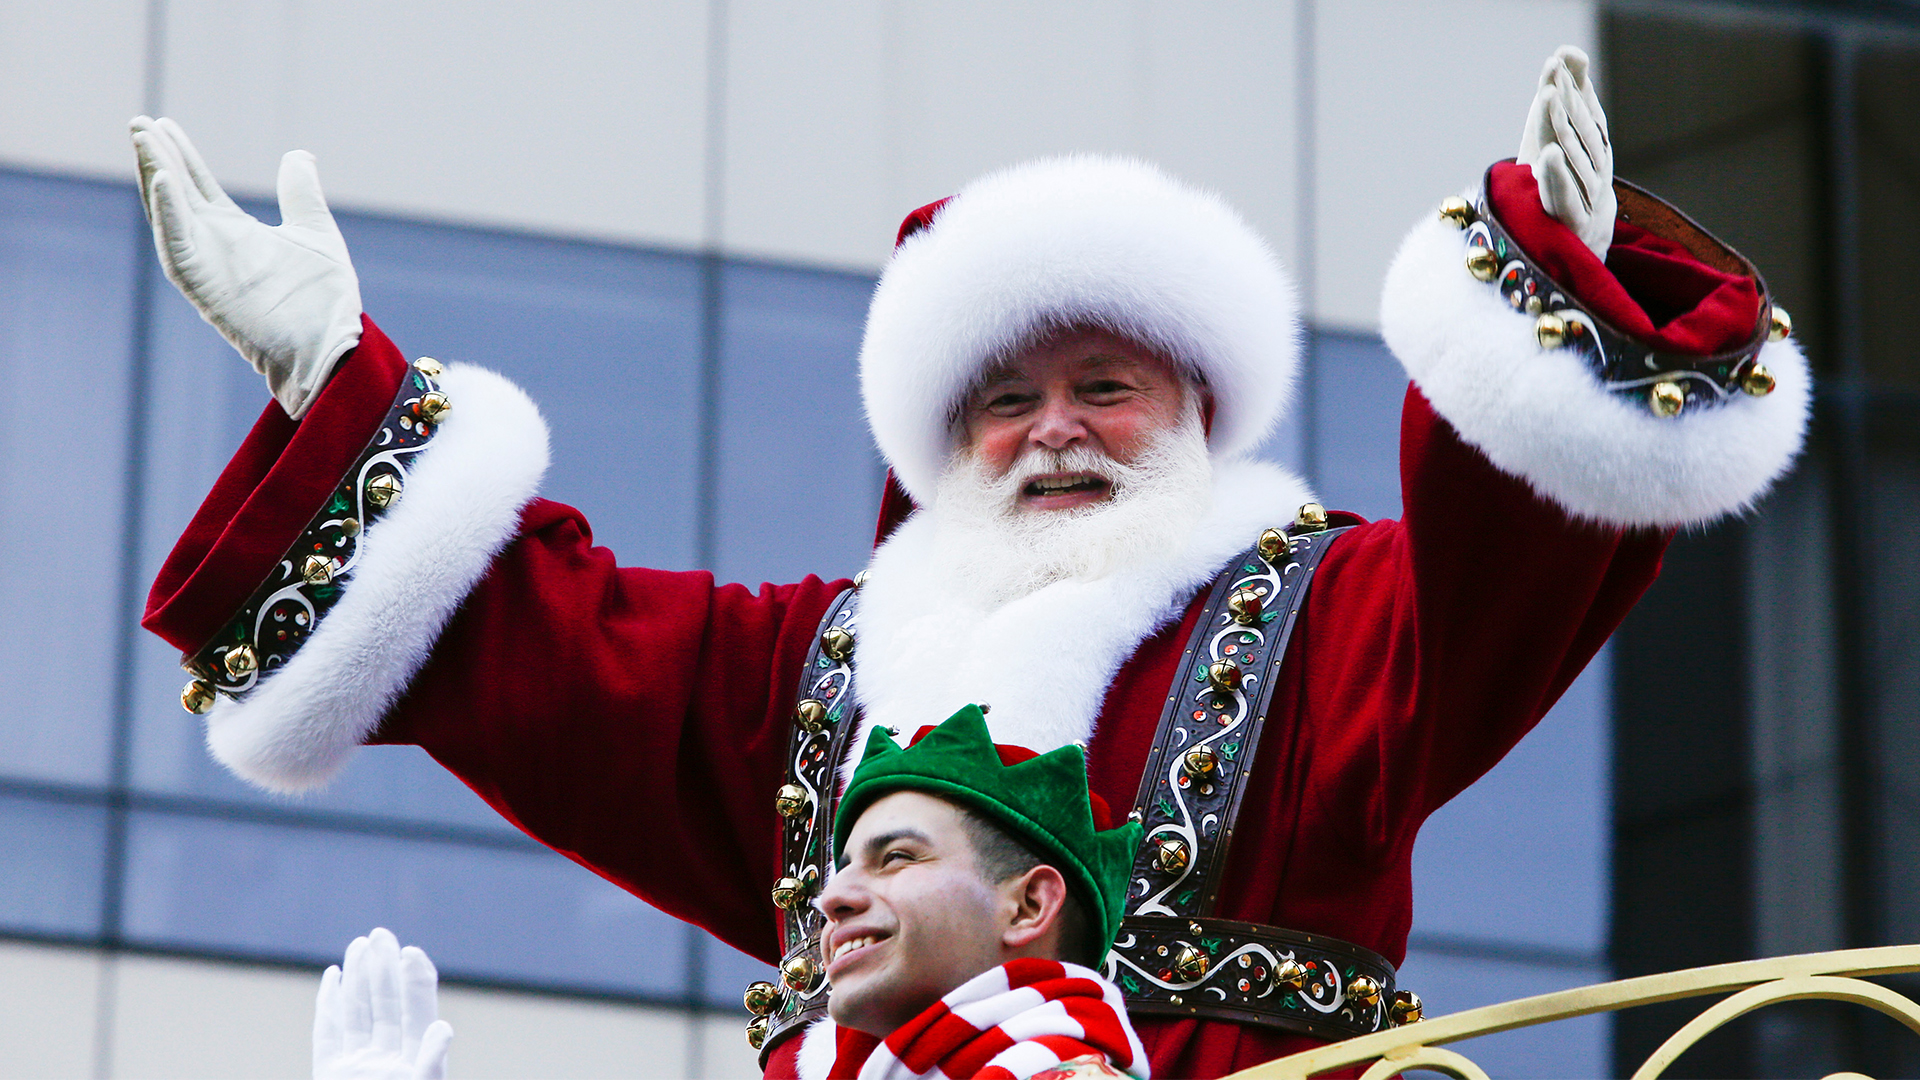 CHRISTMAS 2018 | Parades, Holiday Lights And Santa! List of ...